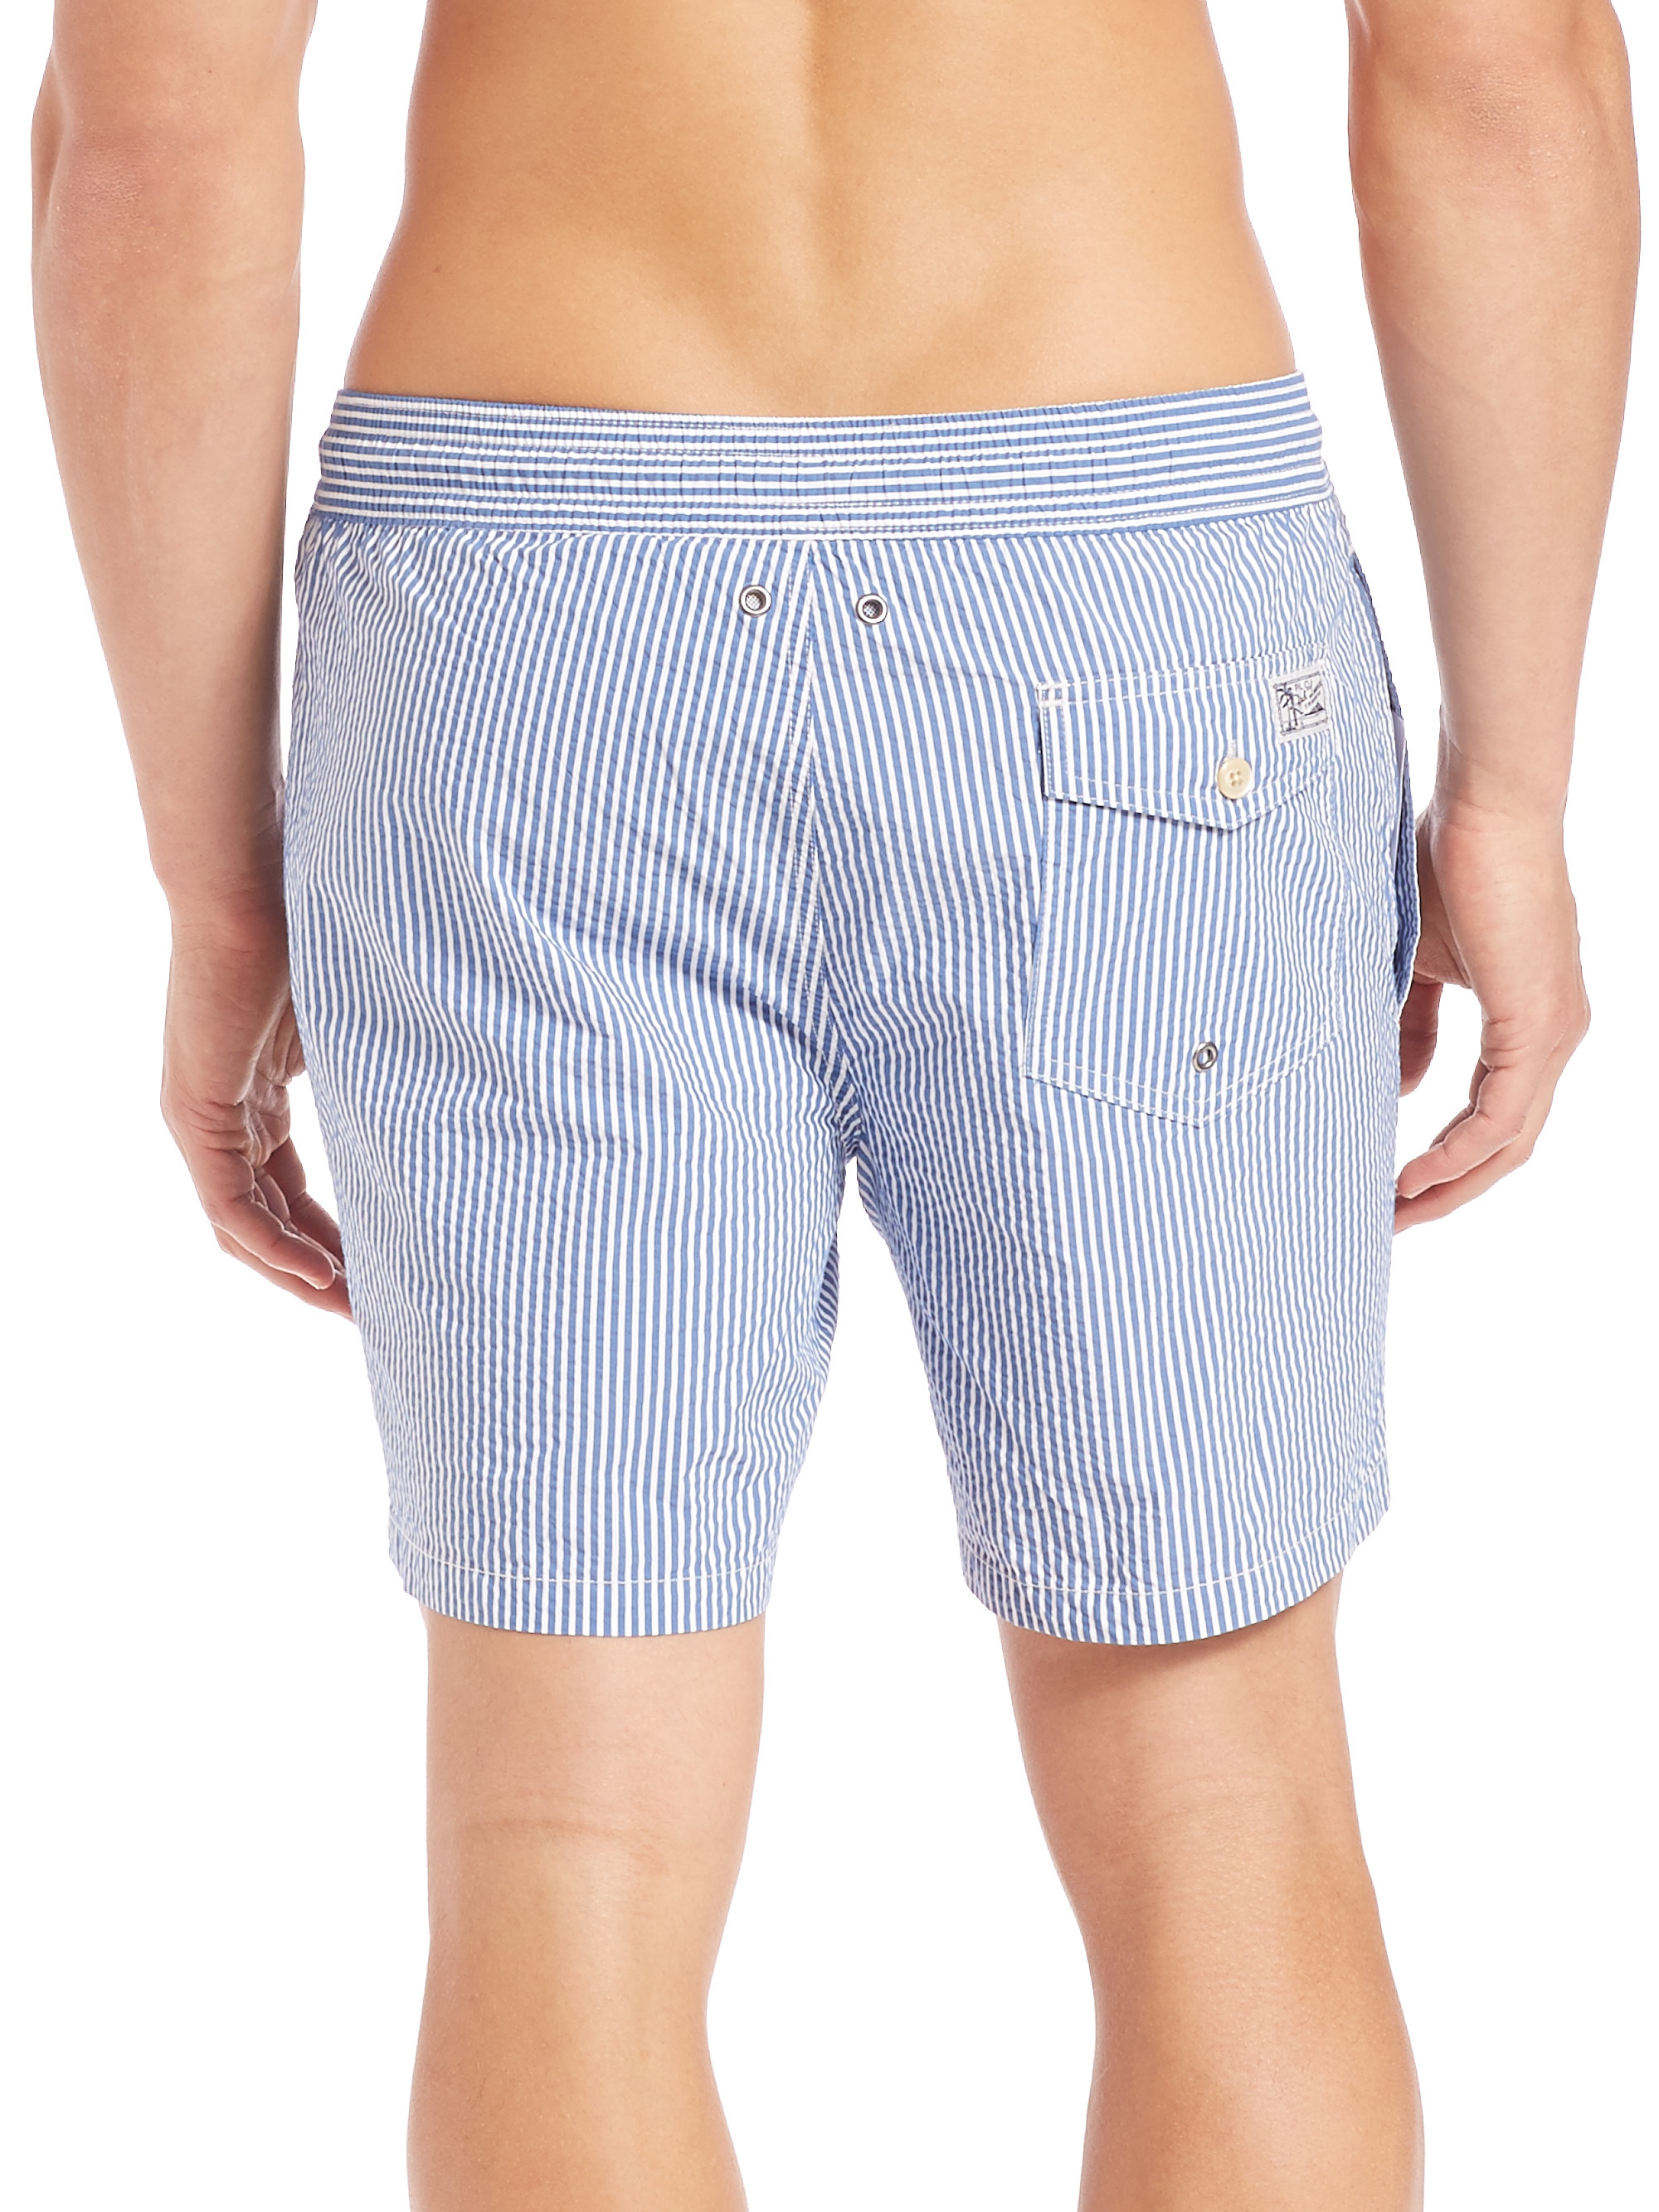 57f24a4a95 ... coupon code for lyst polo ralph lauren seersucker traveler swim shorts  in blue for men a4346